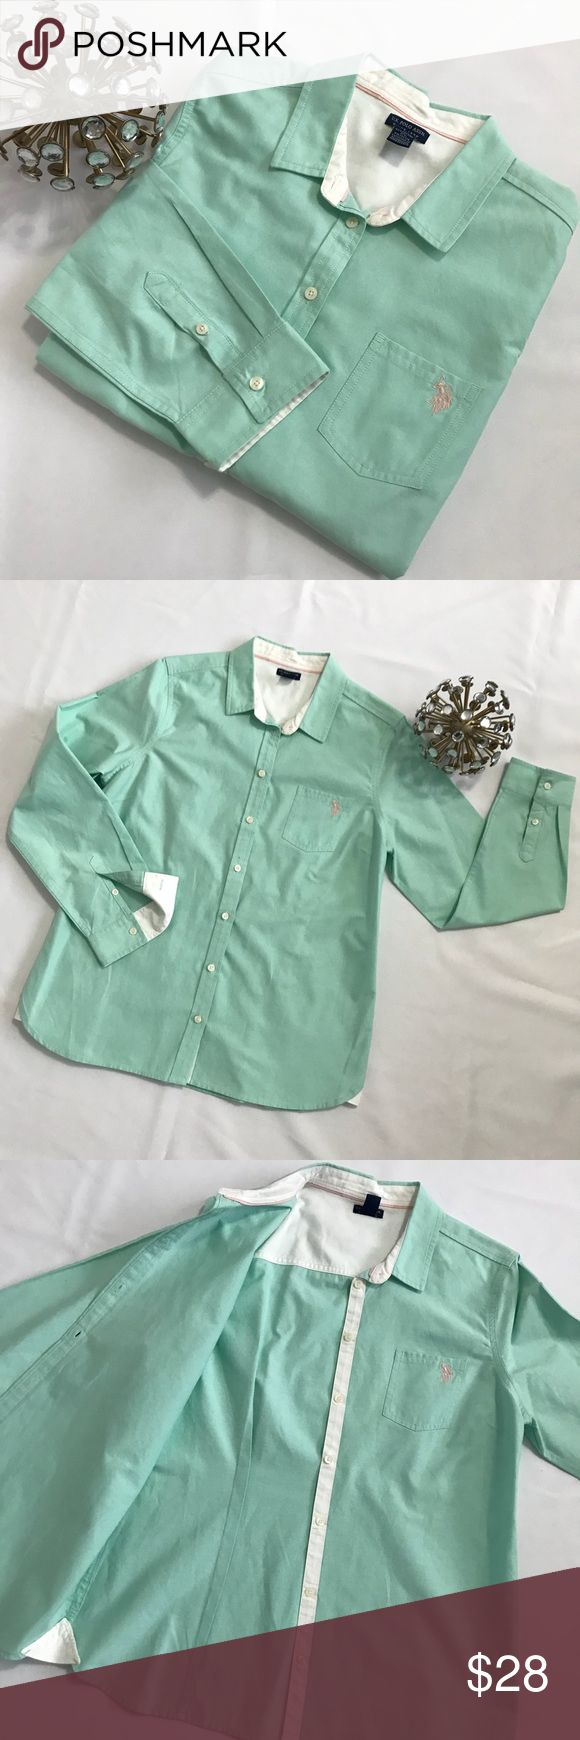 Best 25 polo shirt women ideas on pinterest polo shirt for Mint color polo shirt